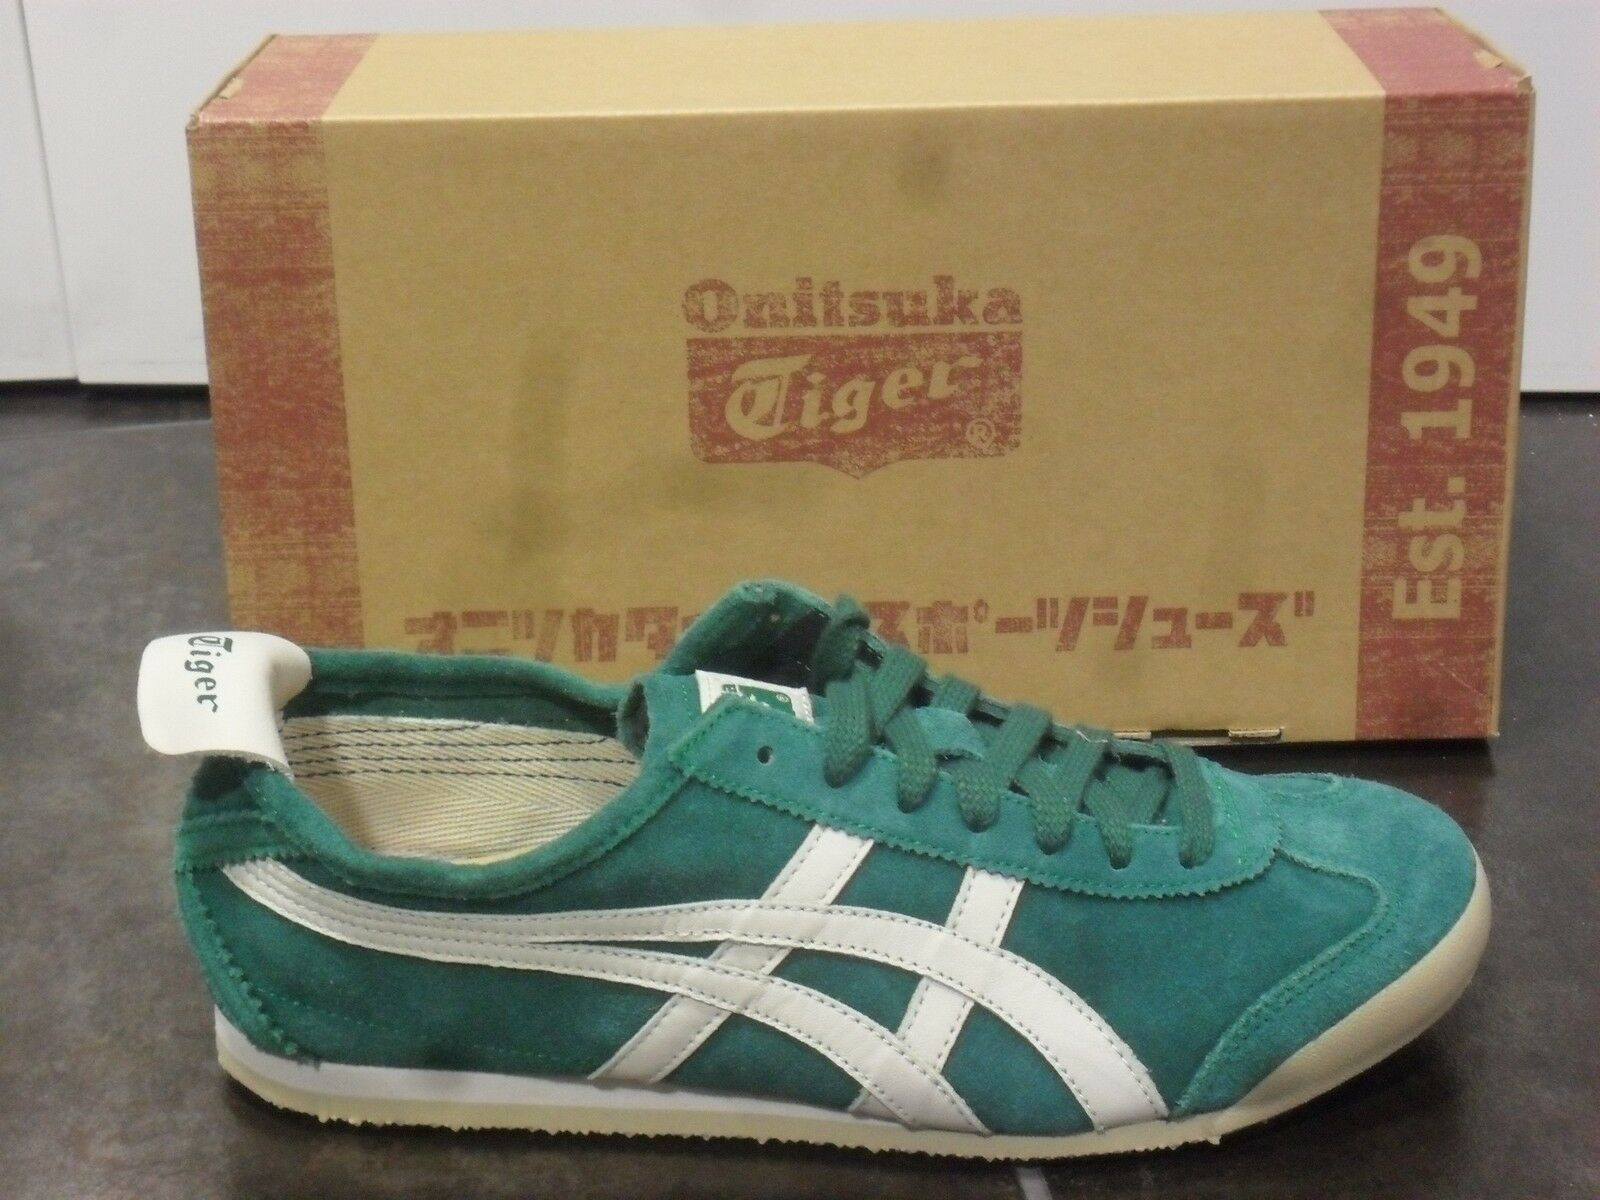 ASICS ONITSUKA TIGER MEXICO MEXICO SHOES VINTAGE SUEDE SNEAKERS SHOES 8005